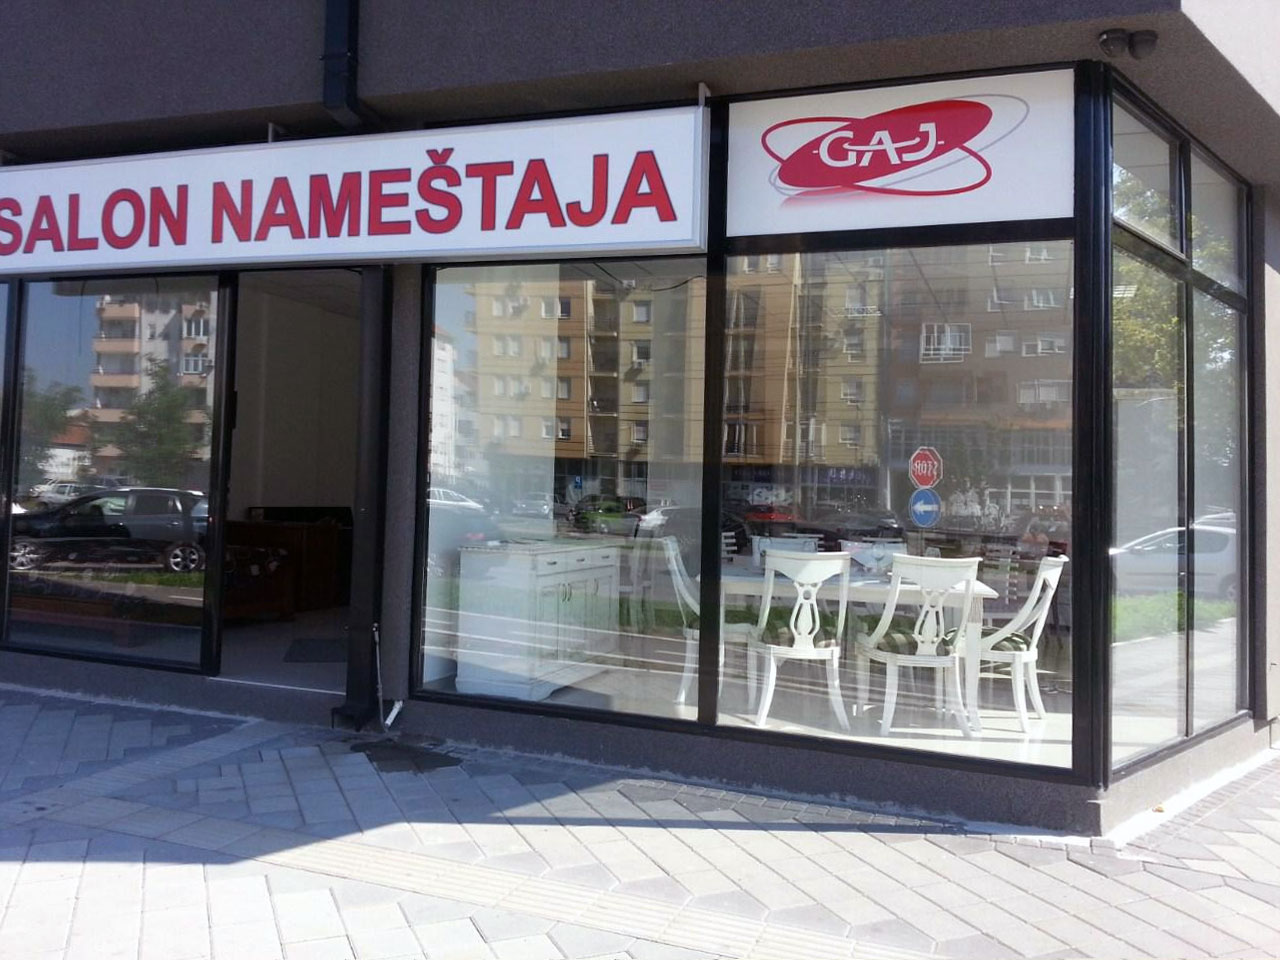 Gaj - Salon namestaja Novi Sad 01